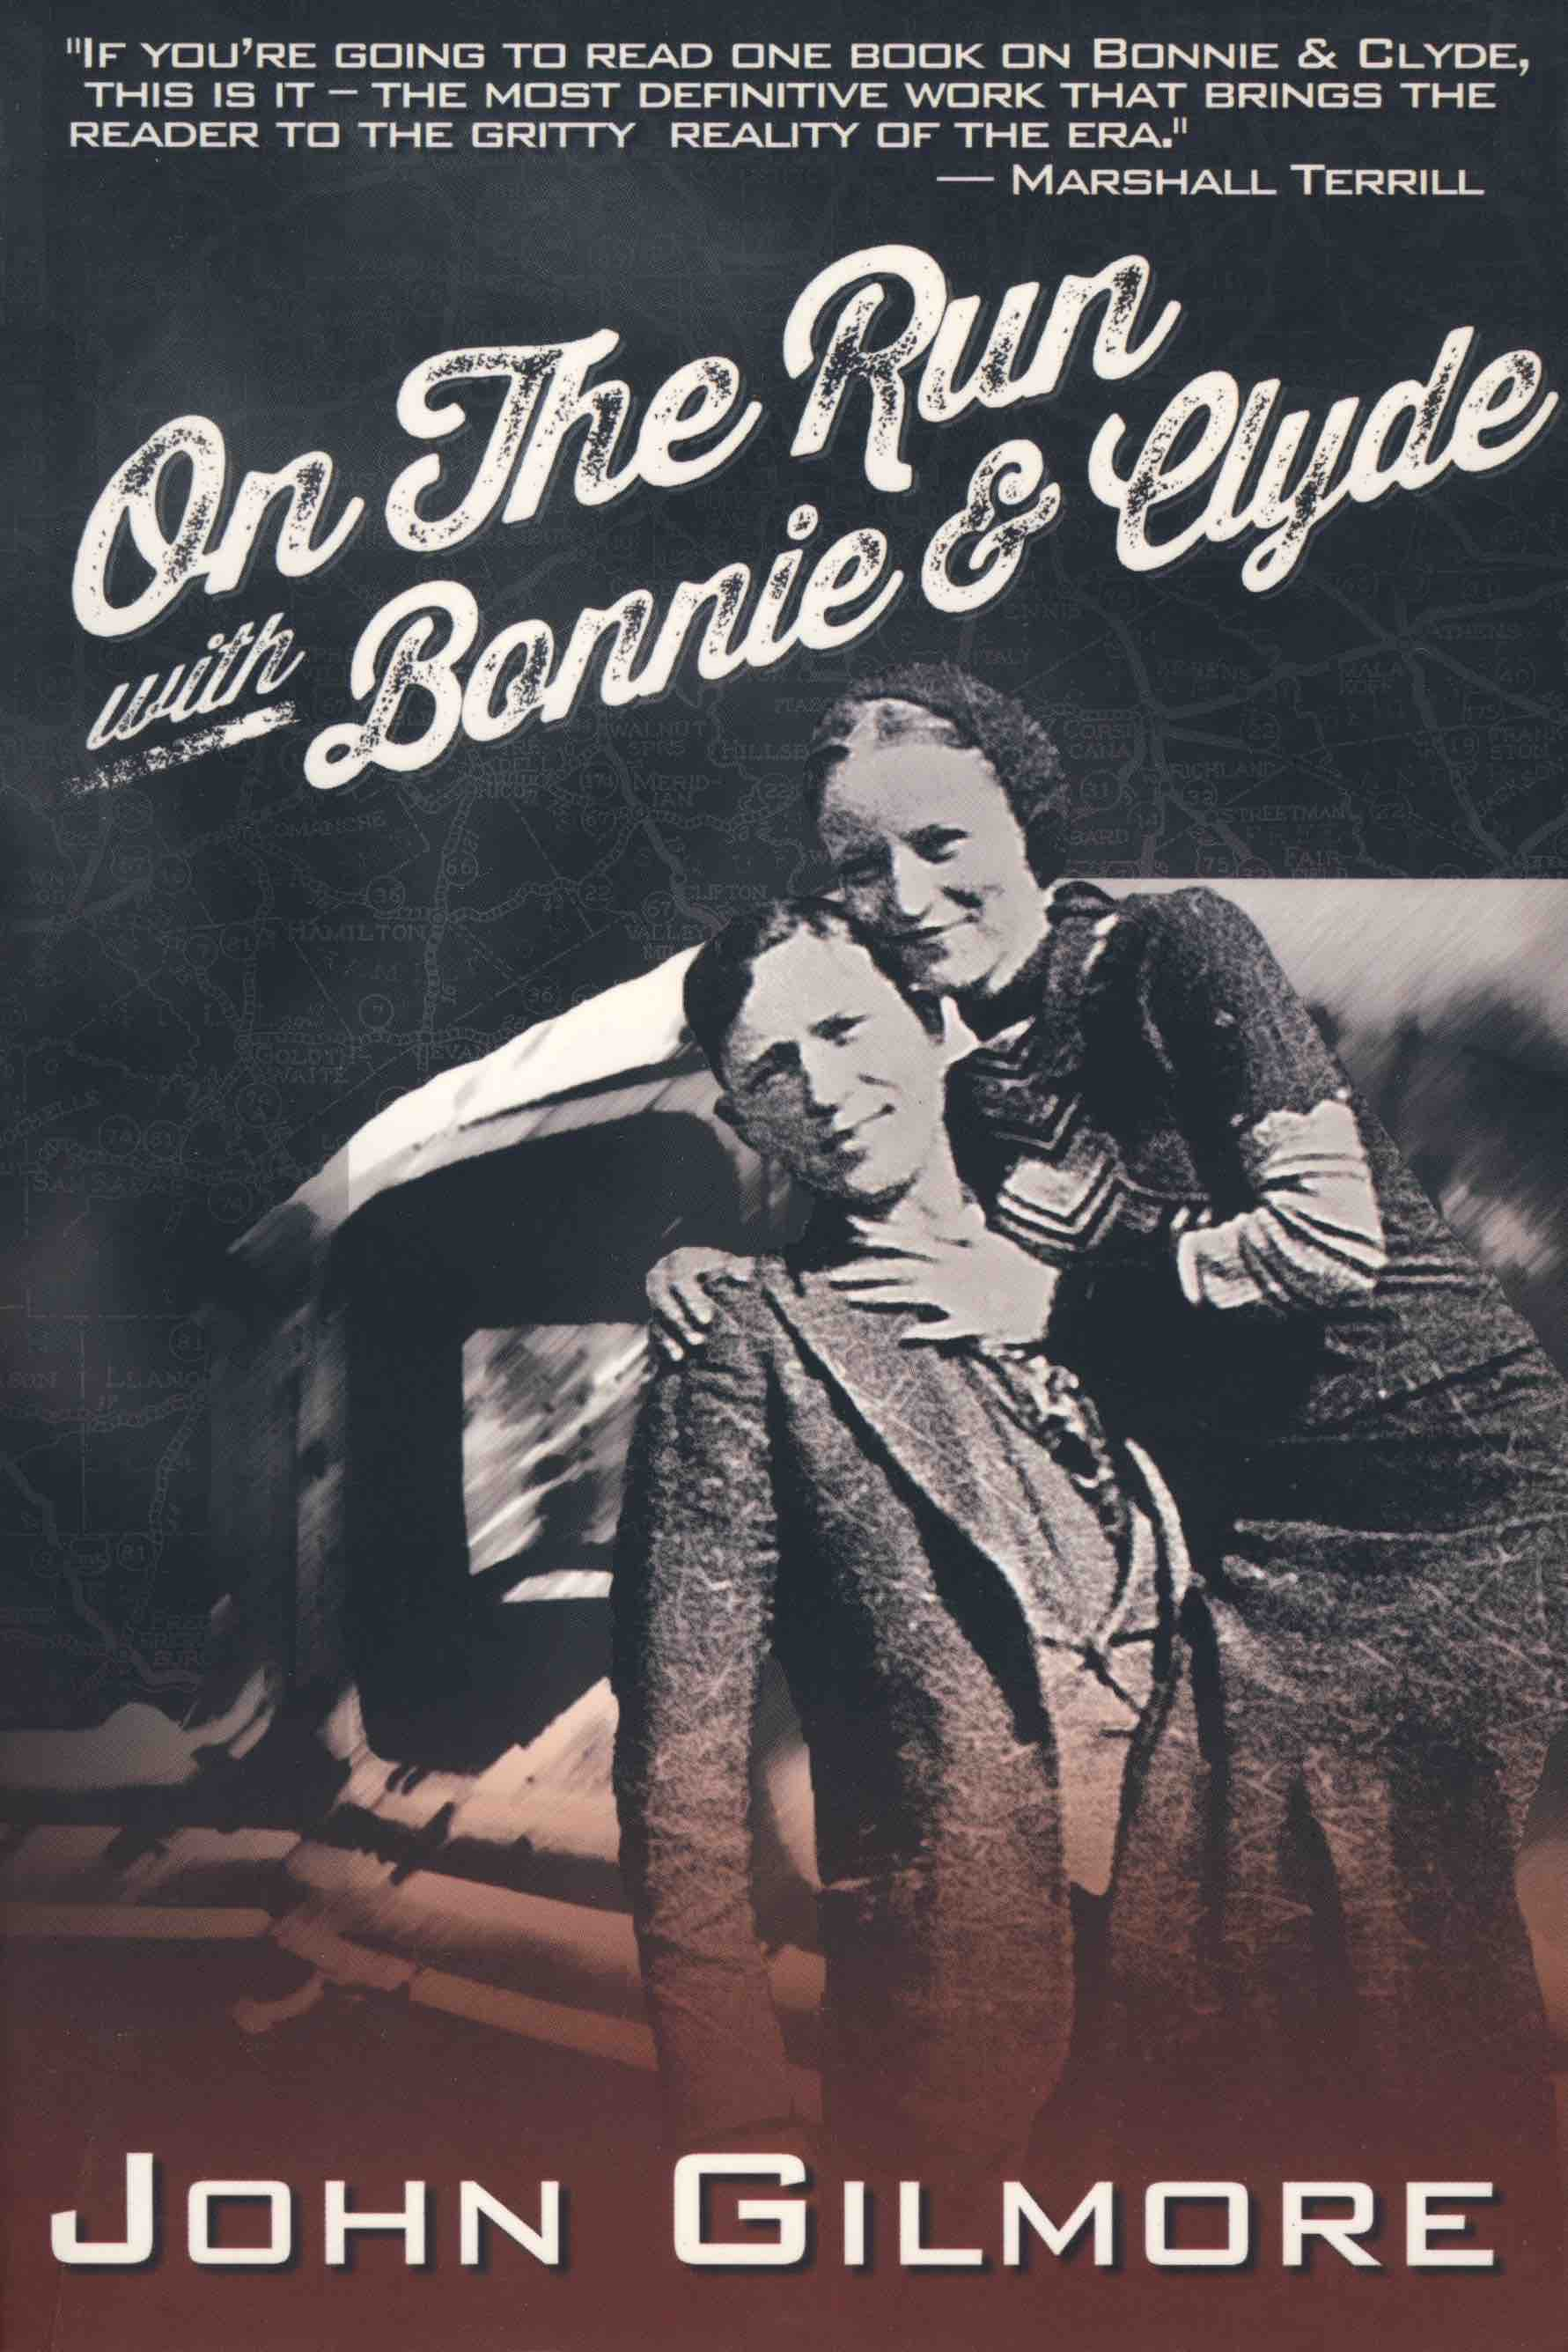 On the Run With Bonnie & Clyde by John Gilmore